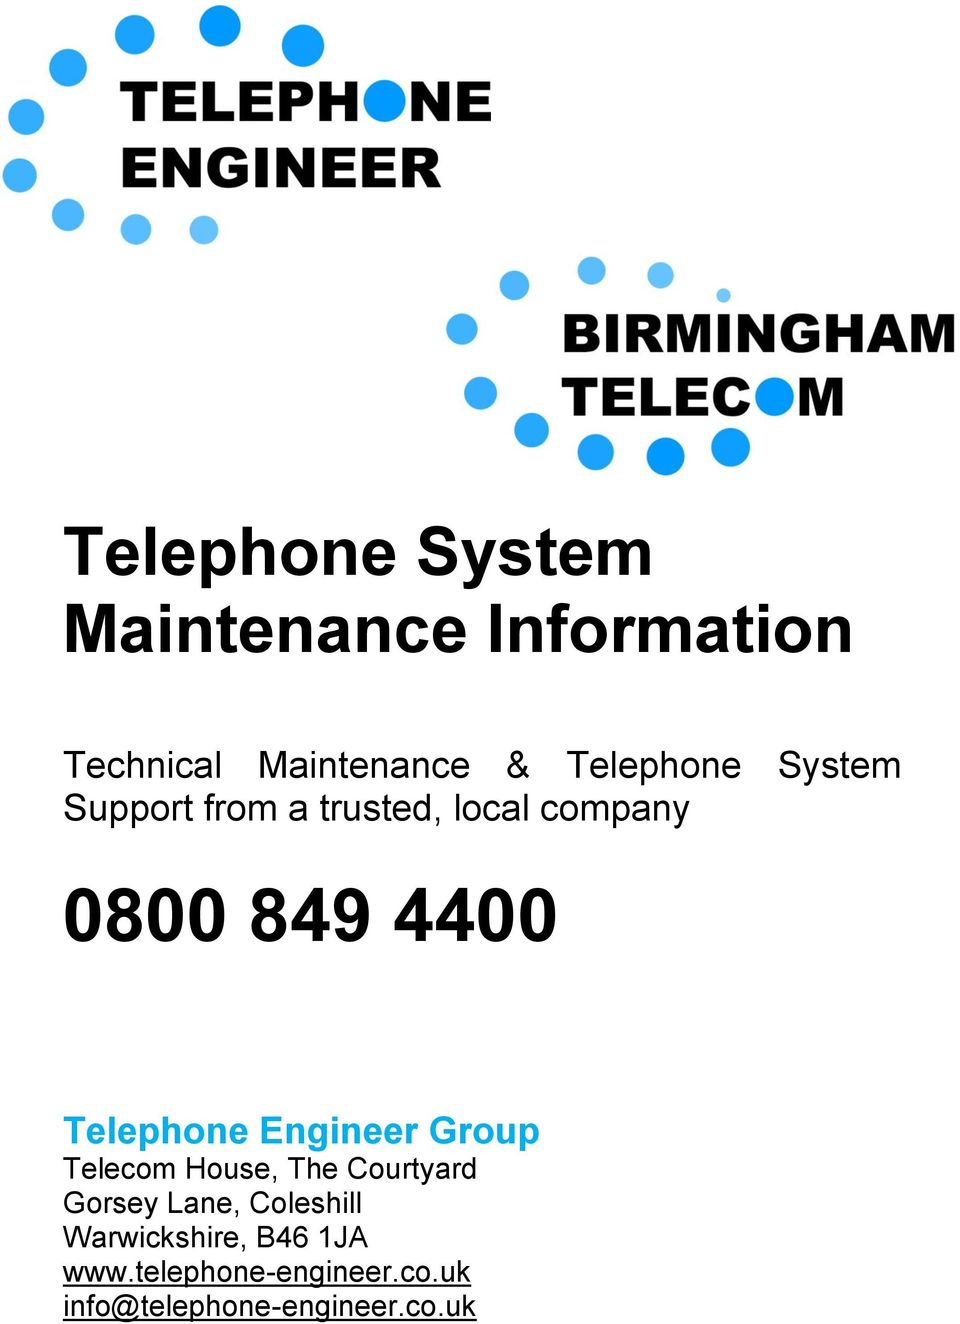 Telephone Engineer Group Telecom House, The Courtyard Gorsey Lane,